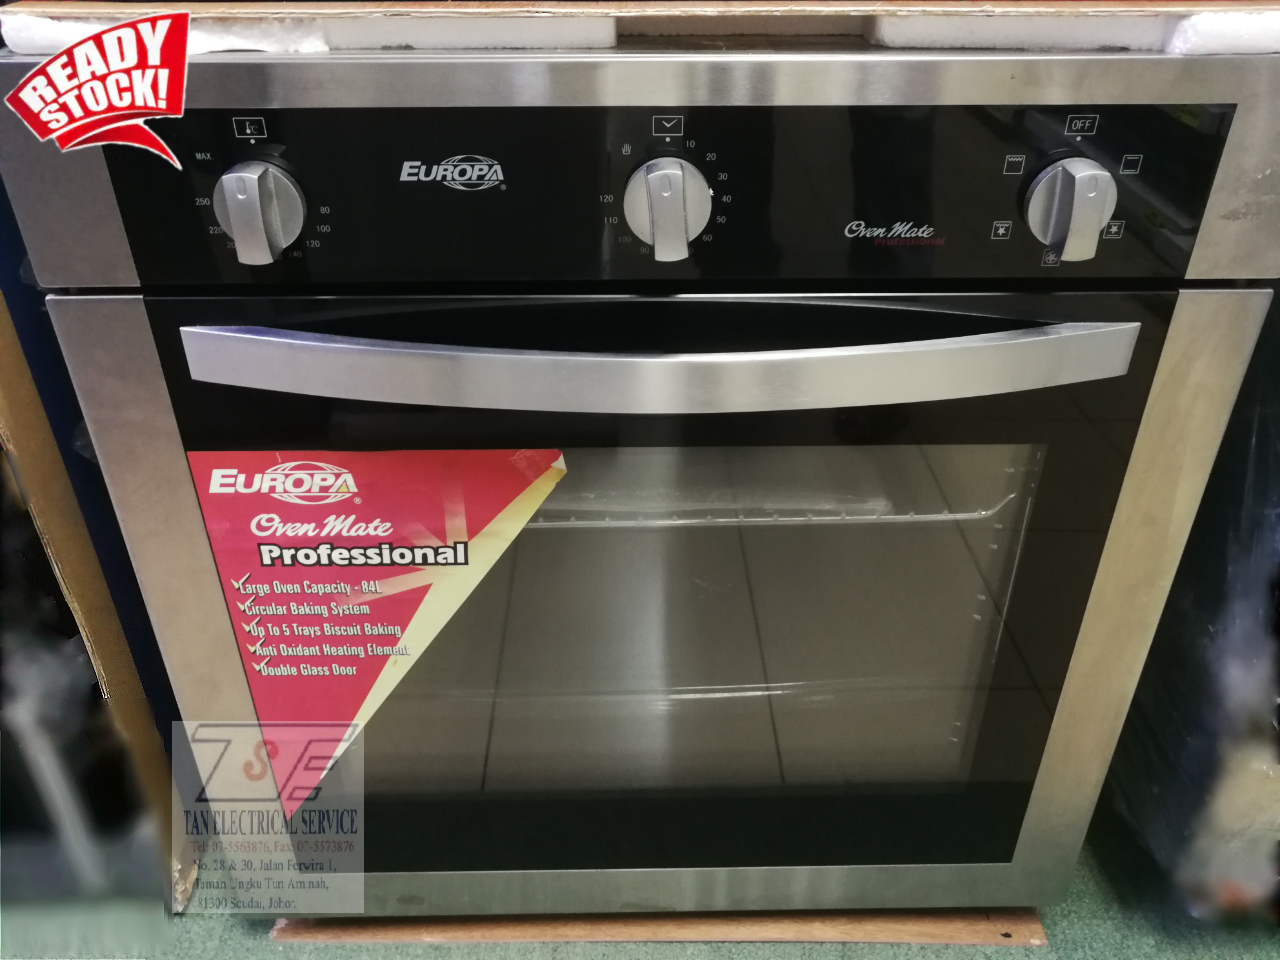 (DISPLAY UNIT) Europa Oven Mate Professional Convection Electric Oven 84L